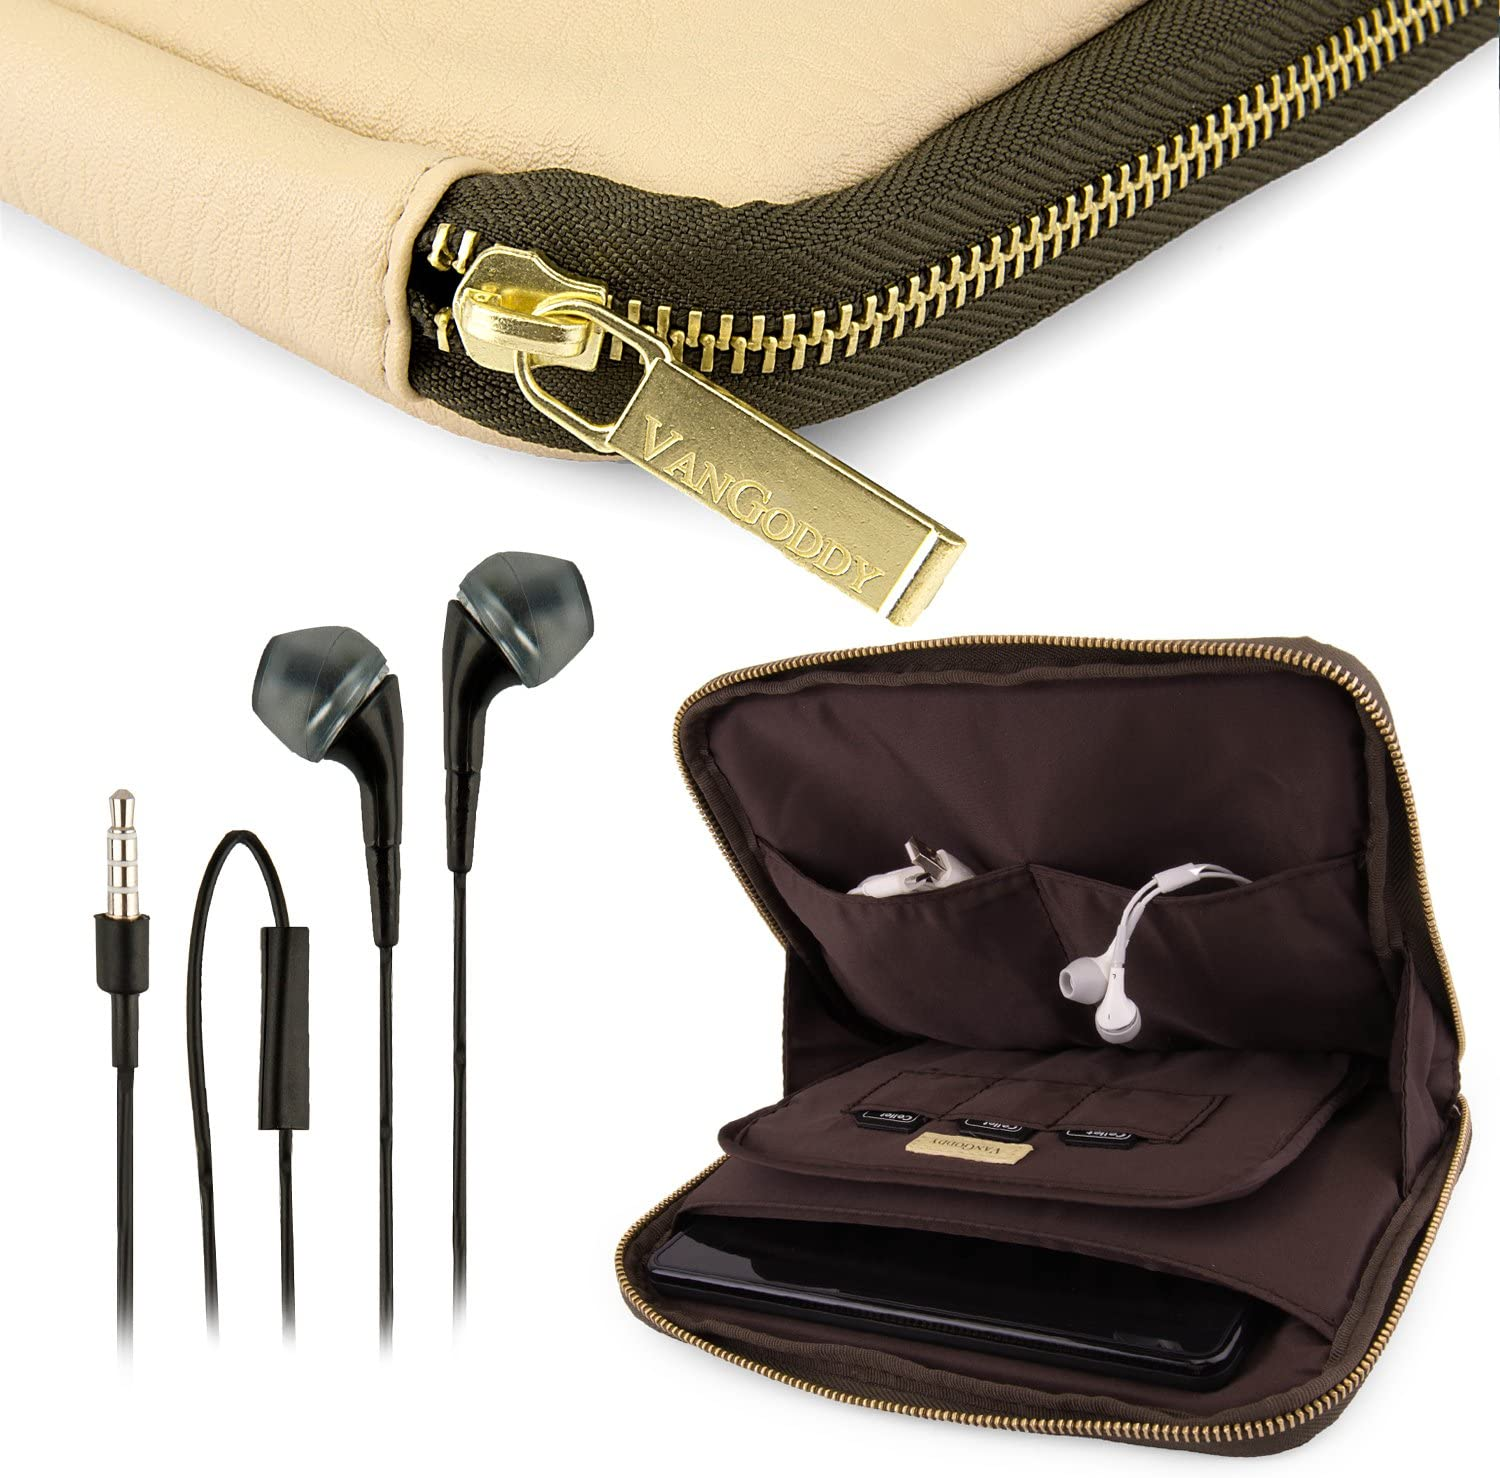 VanGoddy Irista Cover TAN Brown Olive Green City PRO PU Faux Leather Pouch Sleeve for Toshiba Excite Go 7' Tablet + Black Hands-Free Earphones w/Microphone